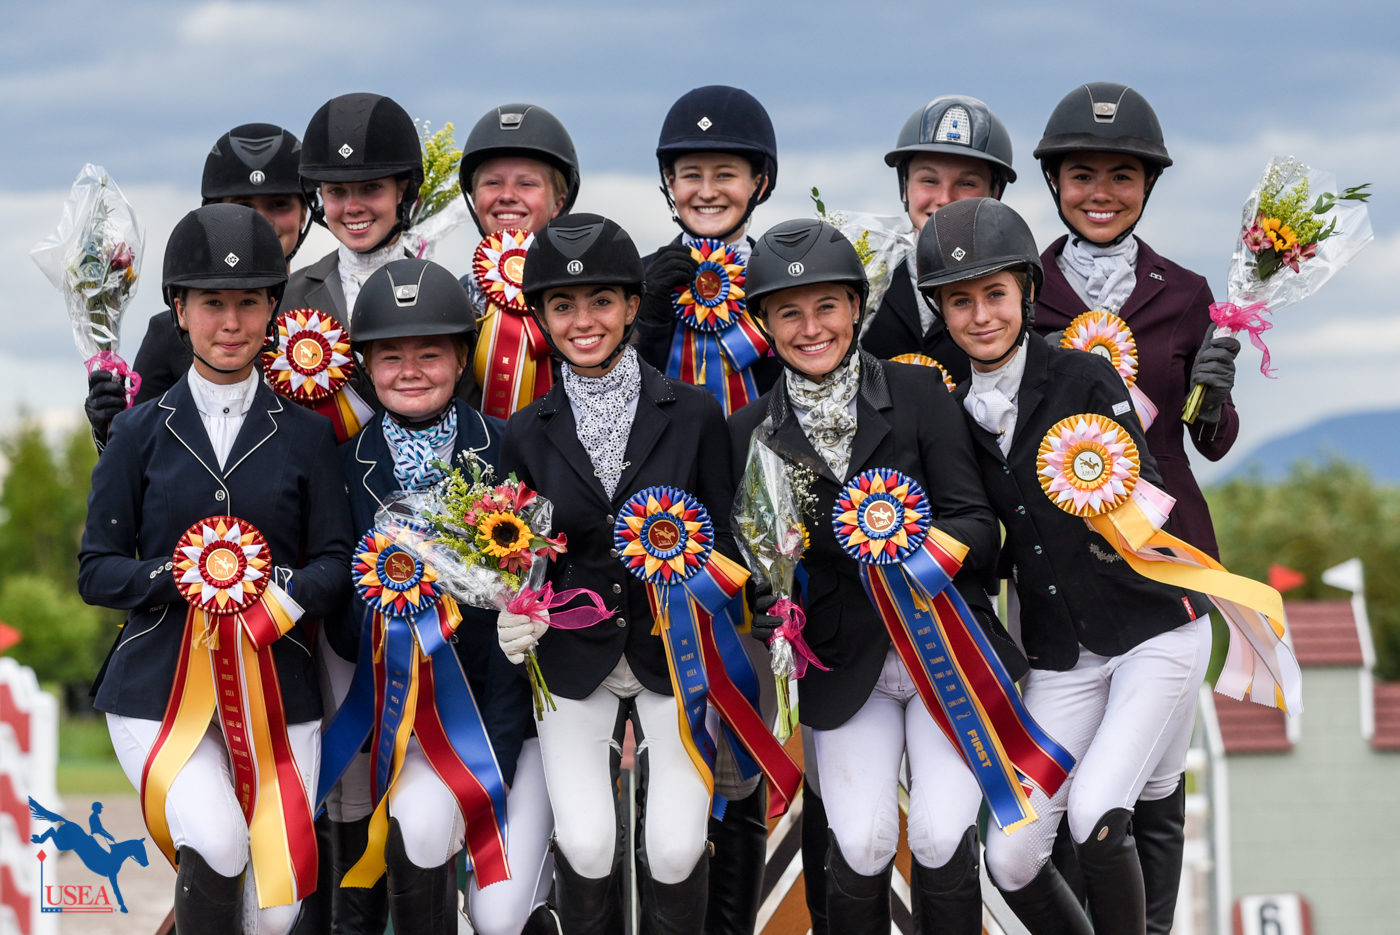 Loved that the T3D Young Riders had so much fun on the podium! USEA/Kate Lokey Photo.